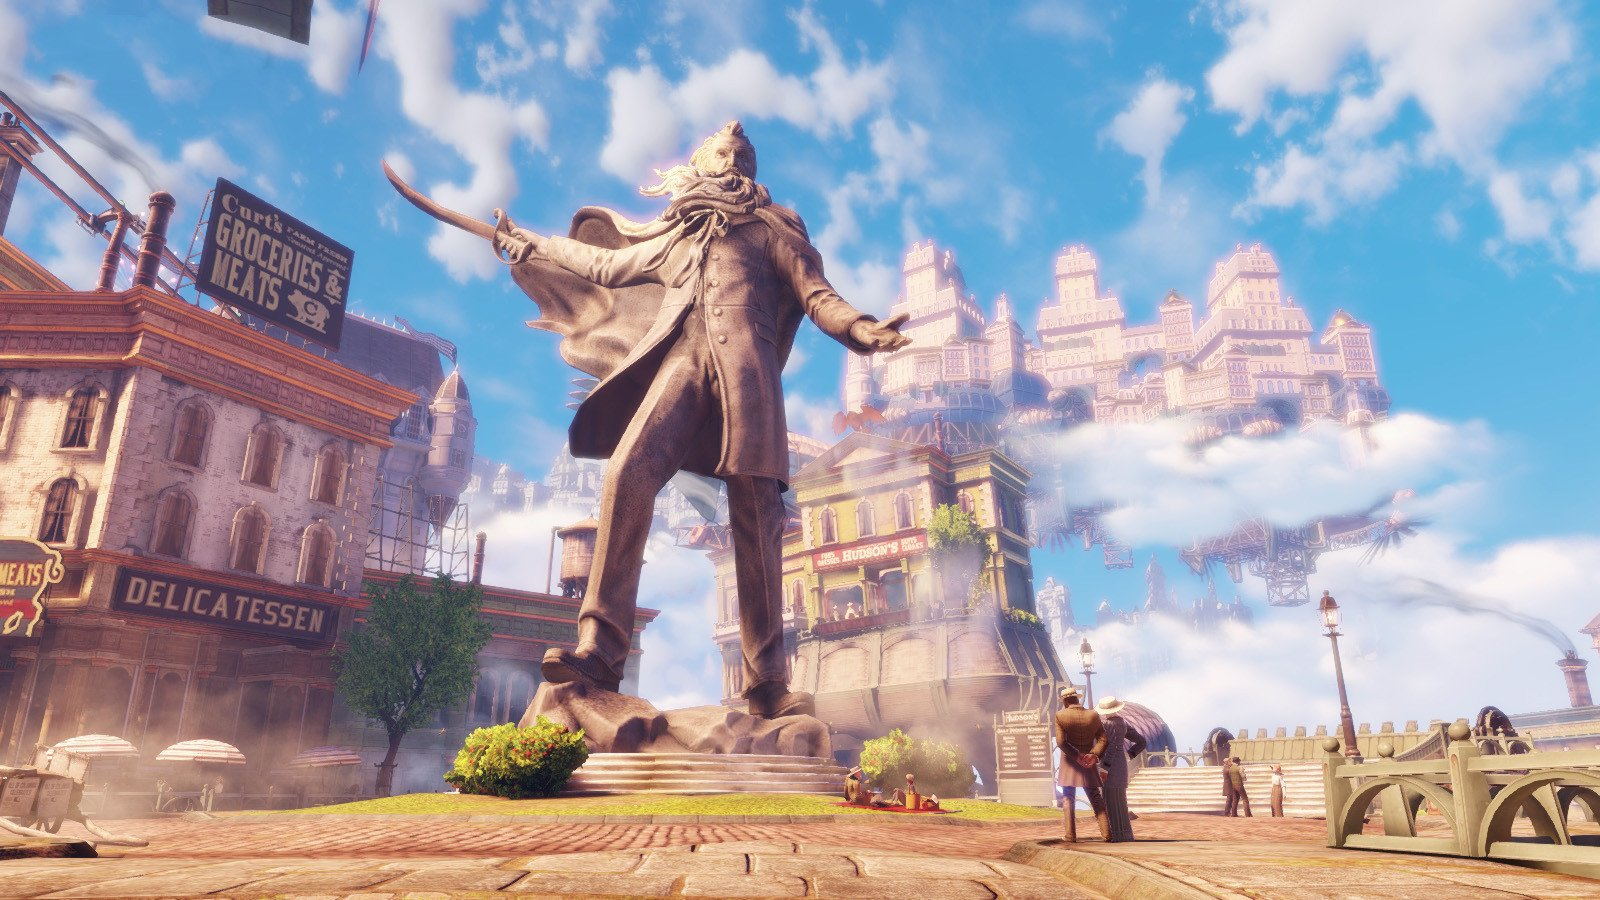 Bioshock Infinite Wallpaper Hd Bioshock Infinite Wallpaper And Background Image